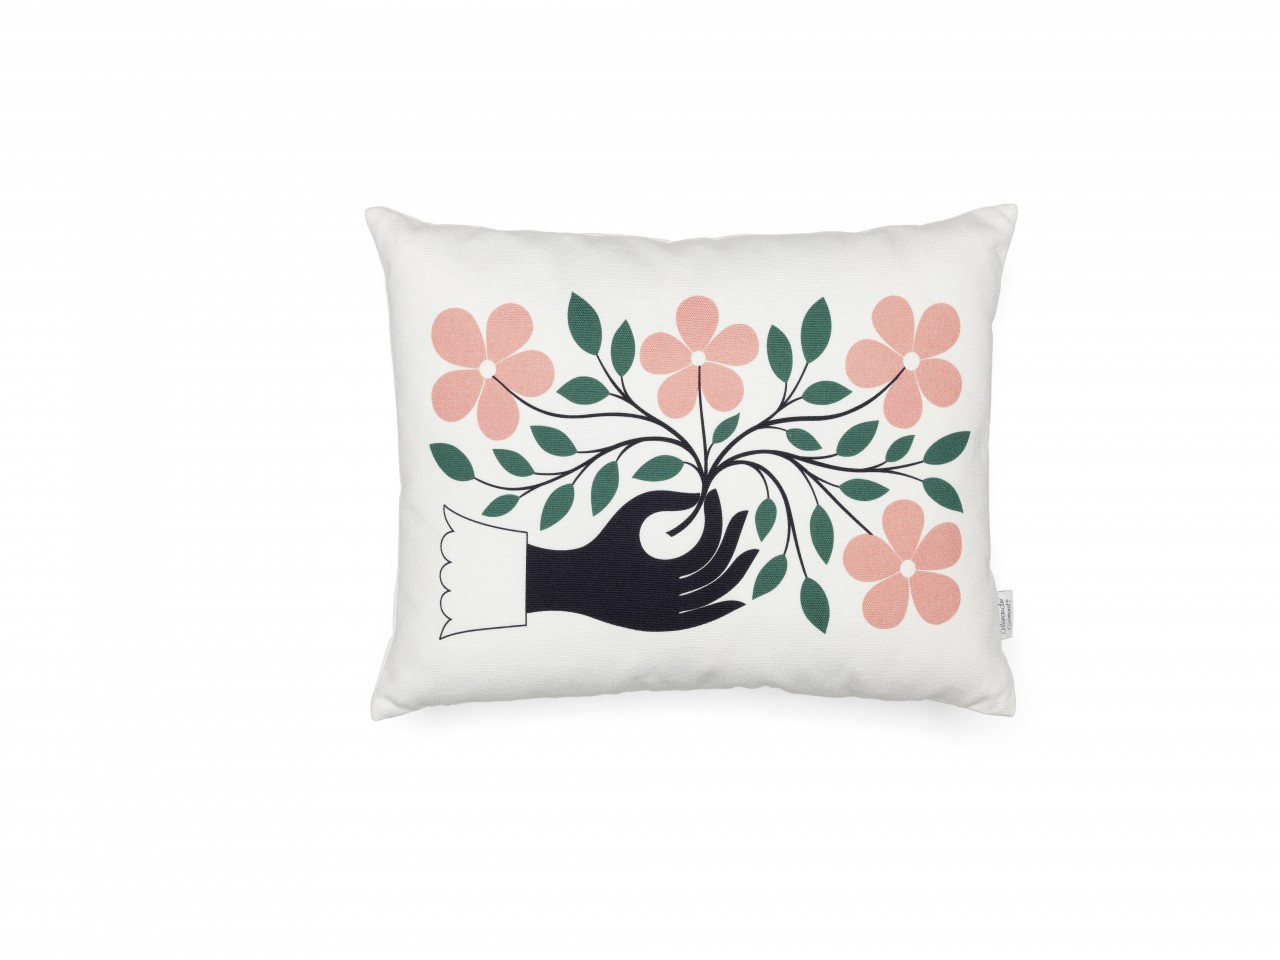 Graphic Print Pillows: Hand